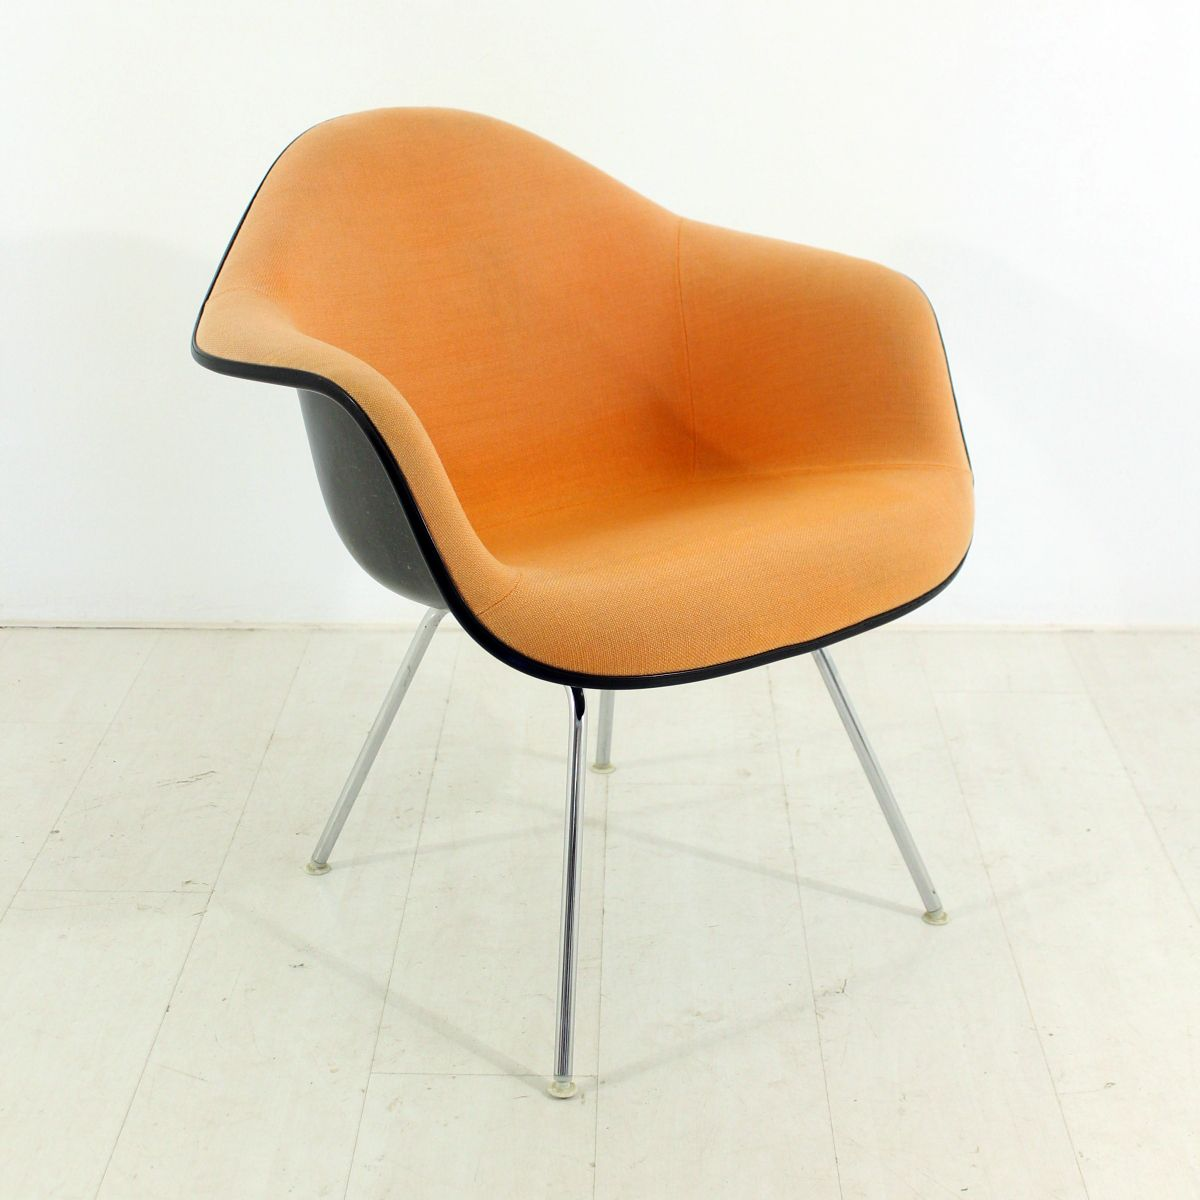 vintage lounge chair in terracotta by charles ray eames for herman miller bei pamono kaufen. Black Bedroom Furniture Sets. Home Design Ideas